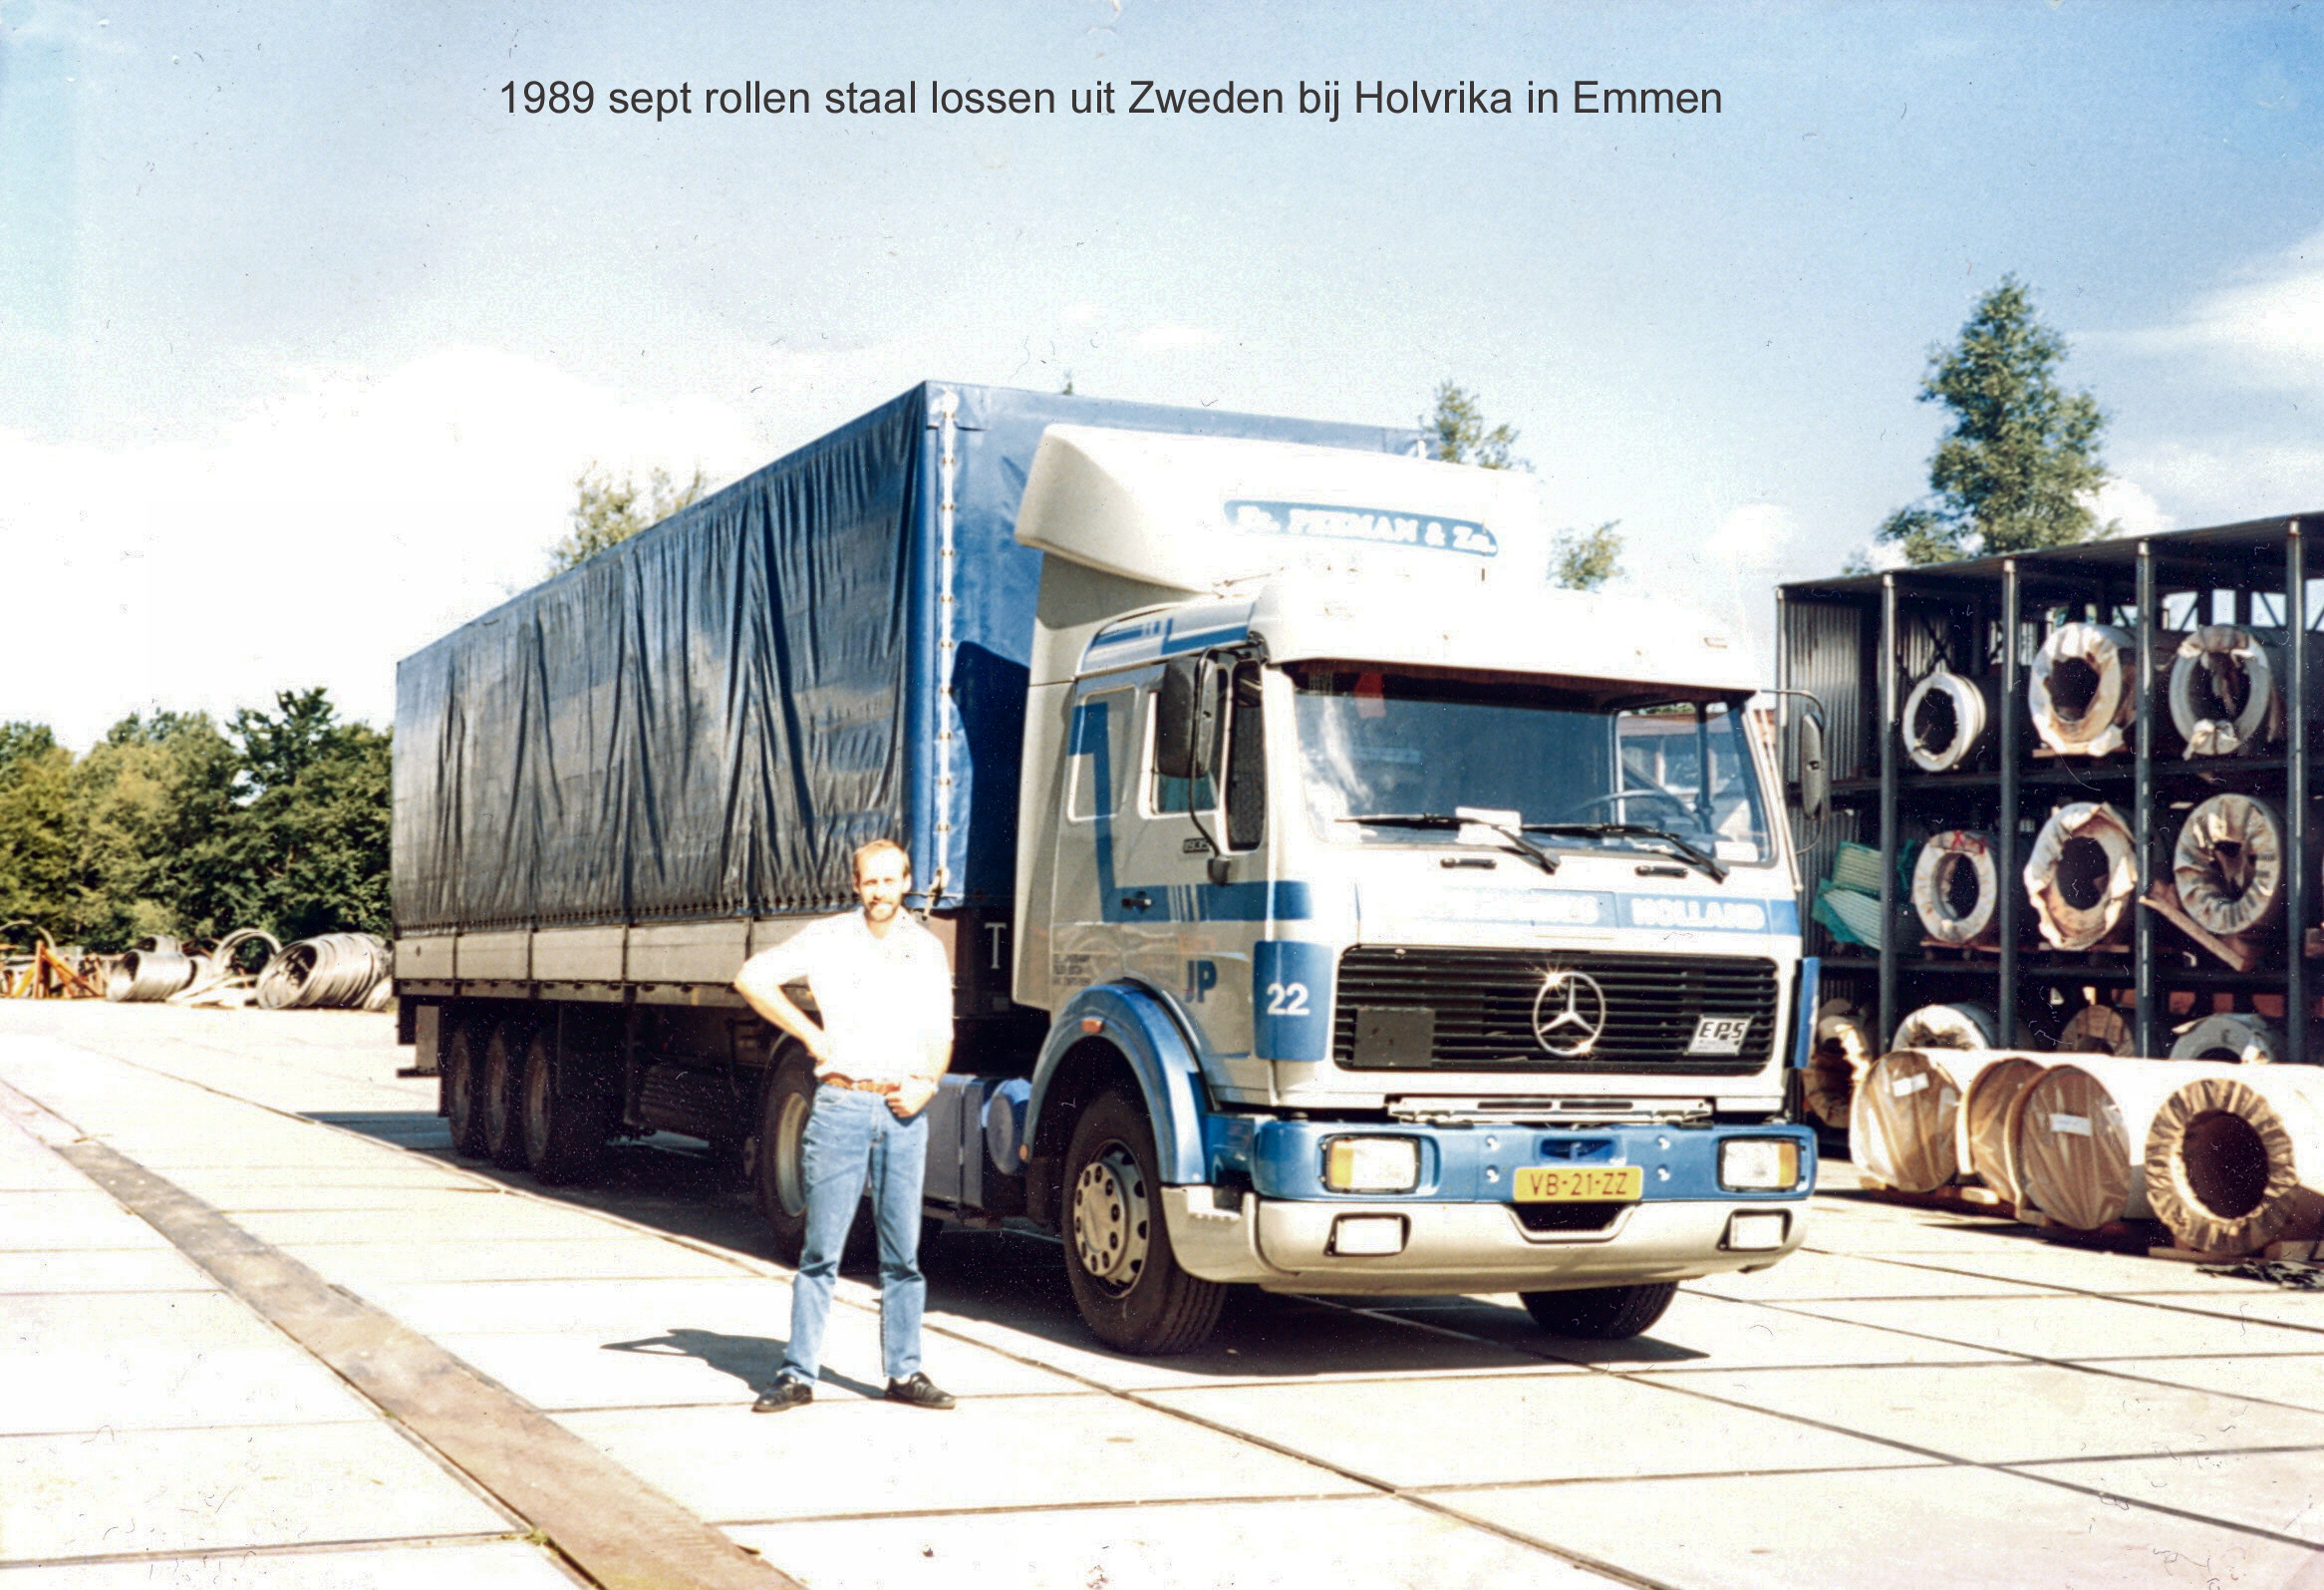 Peeman-Mercedes-Benz-1935-350HP-Unloading-return-cargo--from-Sweden-steel-roles-Emmen-Holland-001-1-sept-1989